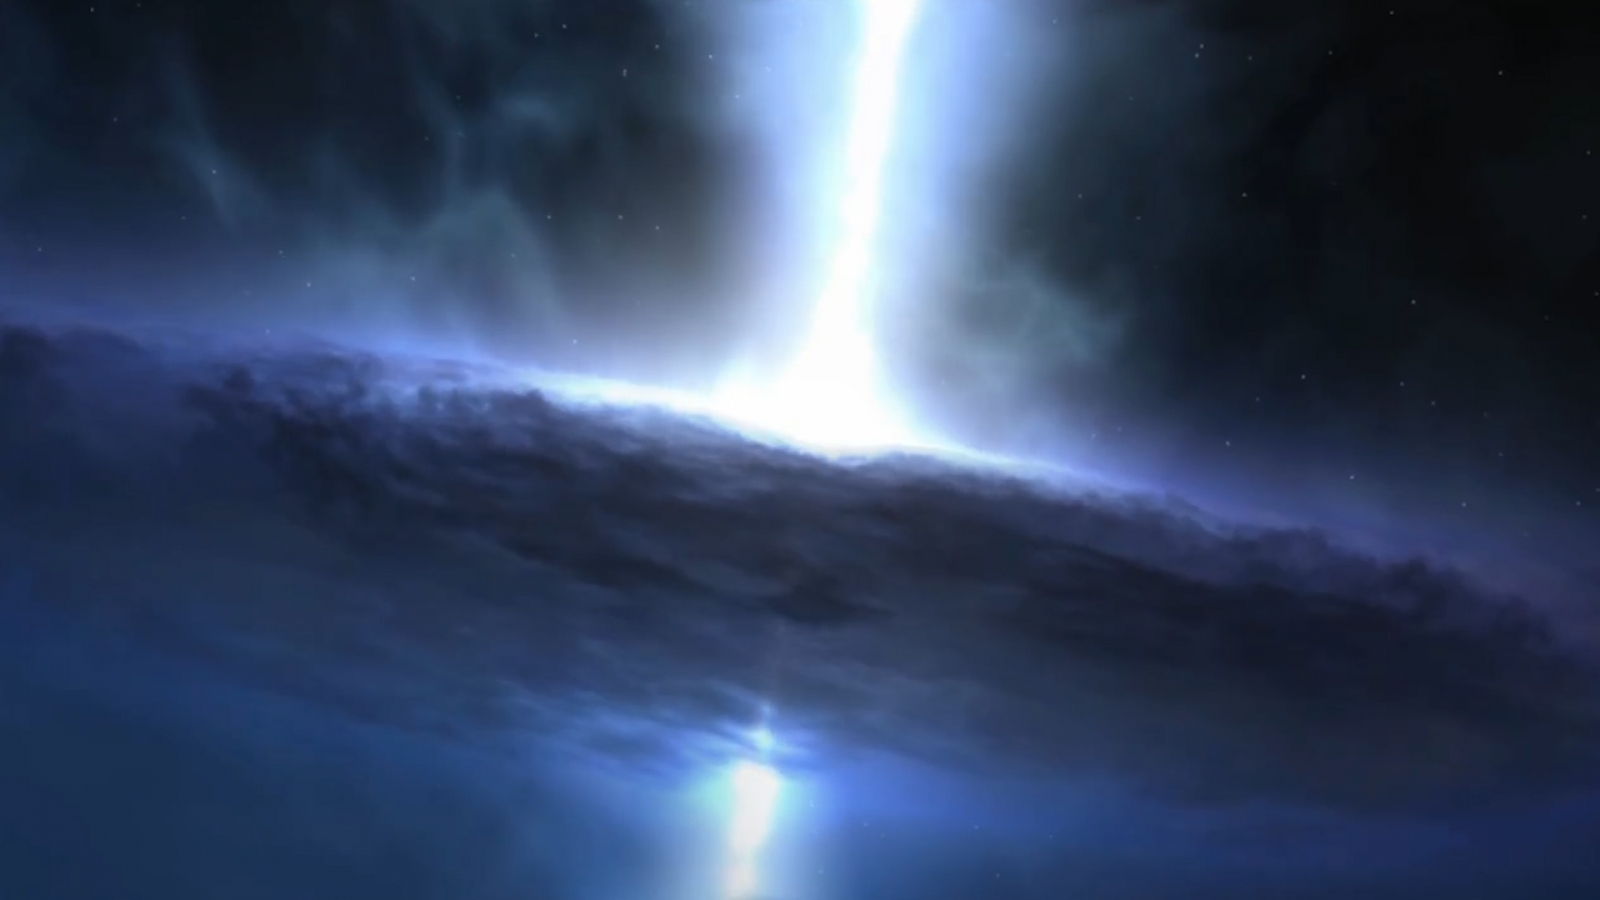 Stars form at the heart of black hole blasts